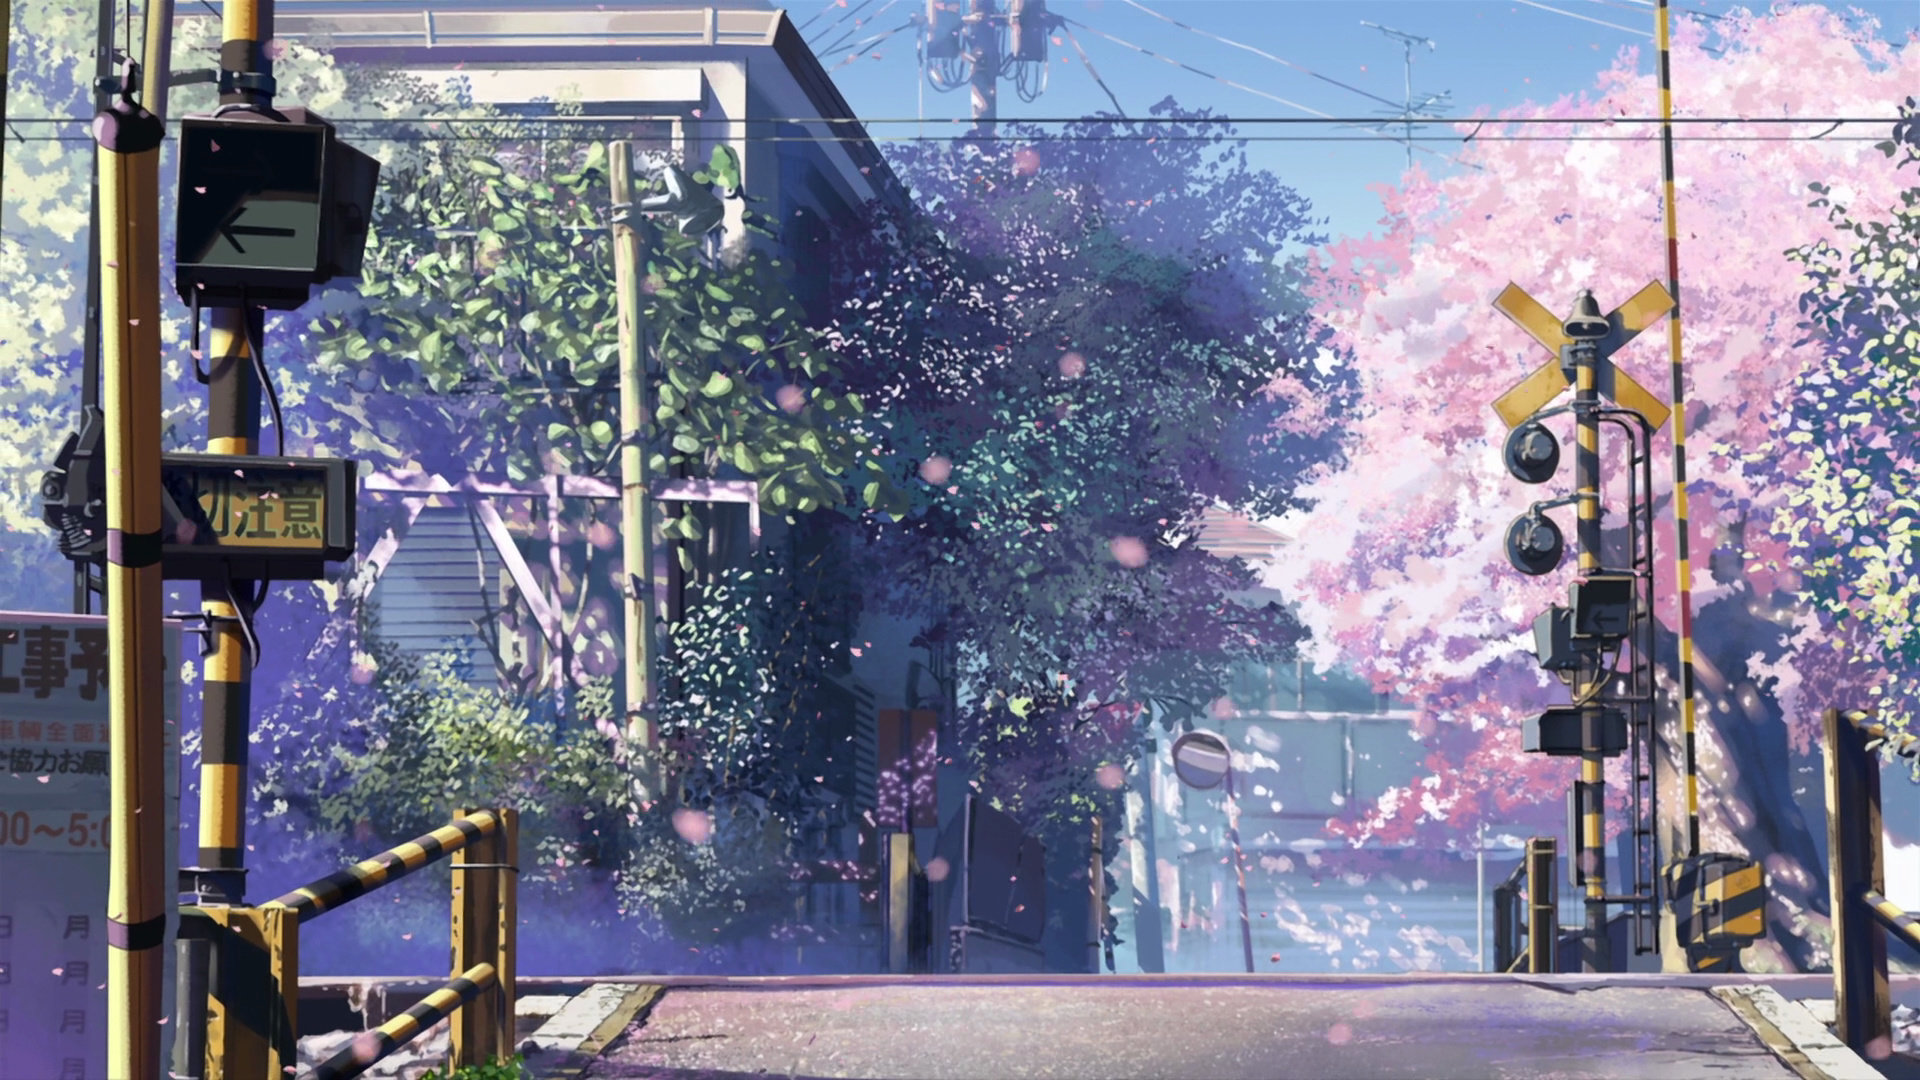 Awesome 5 (cm) Centimeters Per Second free wallpaper ID:90026 for hd 1080p computer